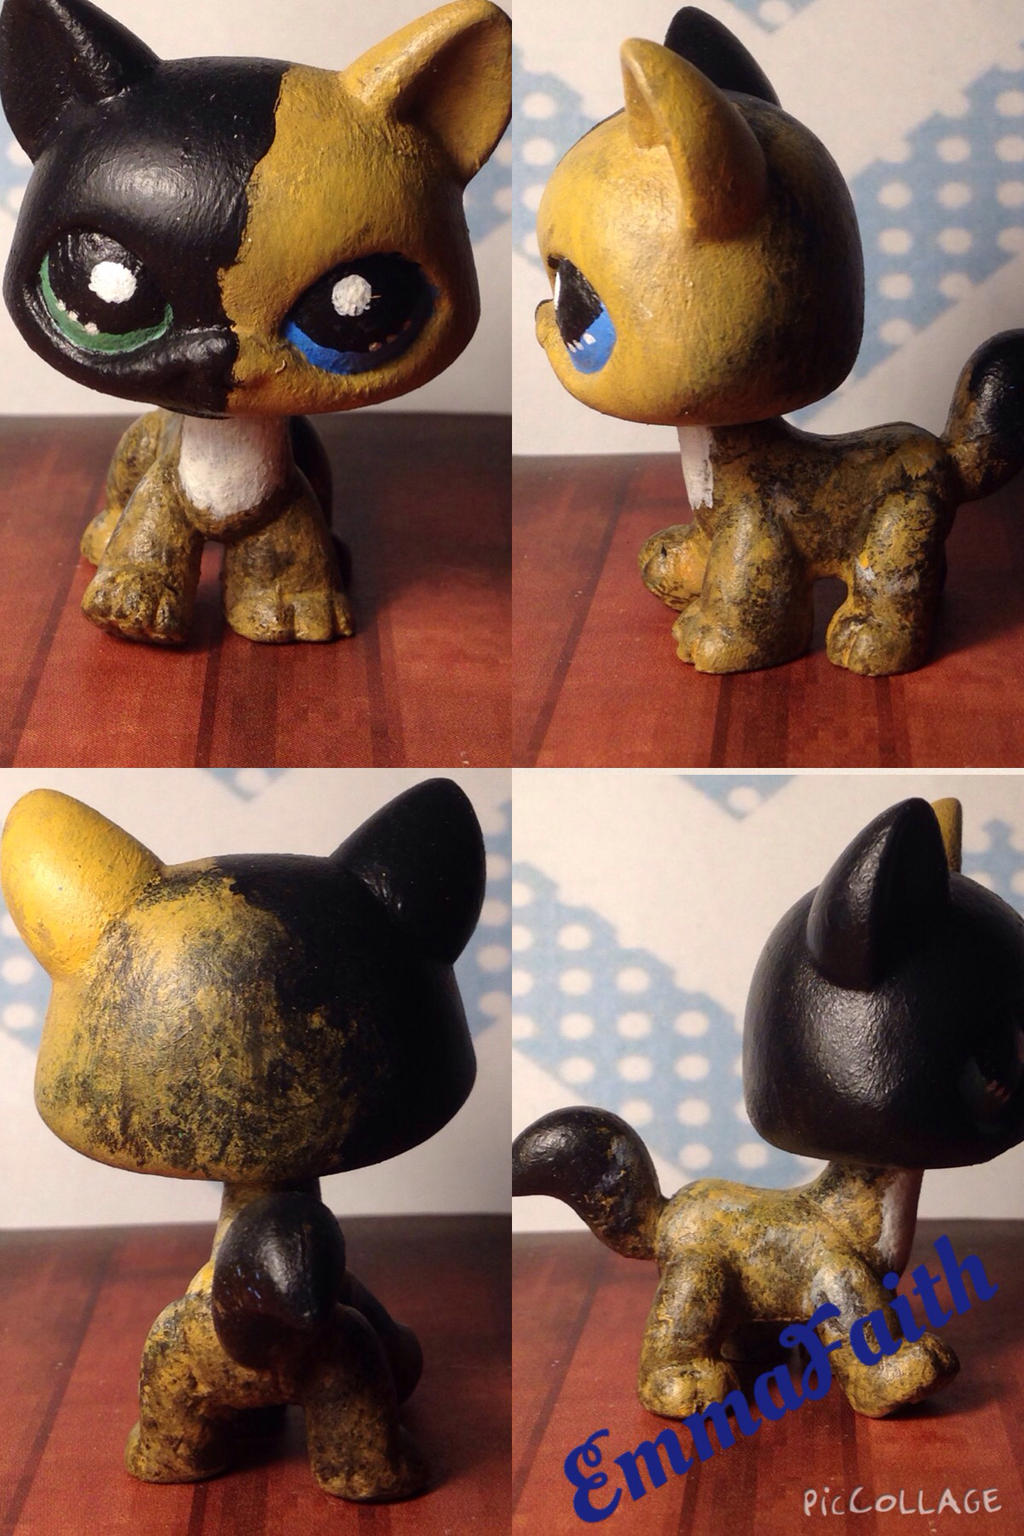 Lps Custom Venus The Two Faced Cat By EmmaFaithW On DeviantArt - Venus two faced cat